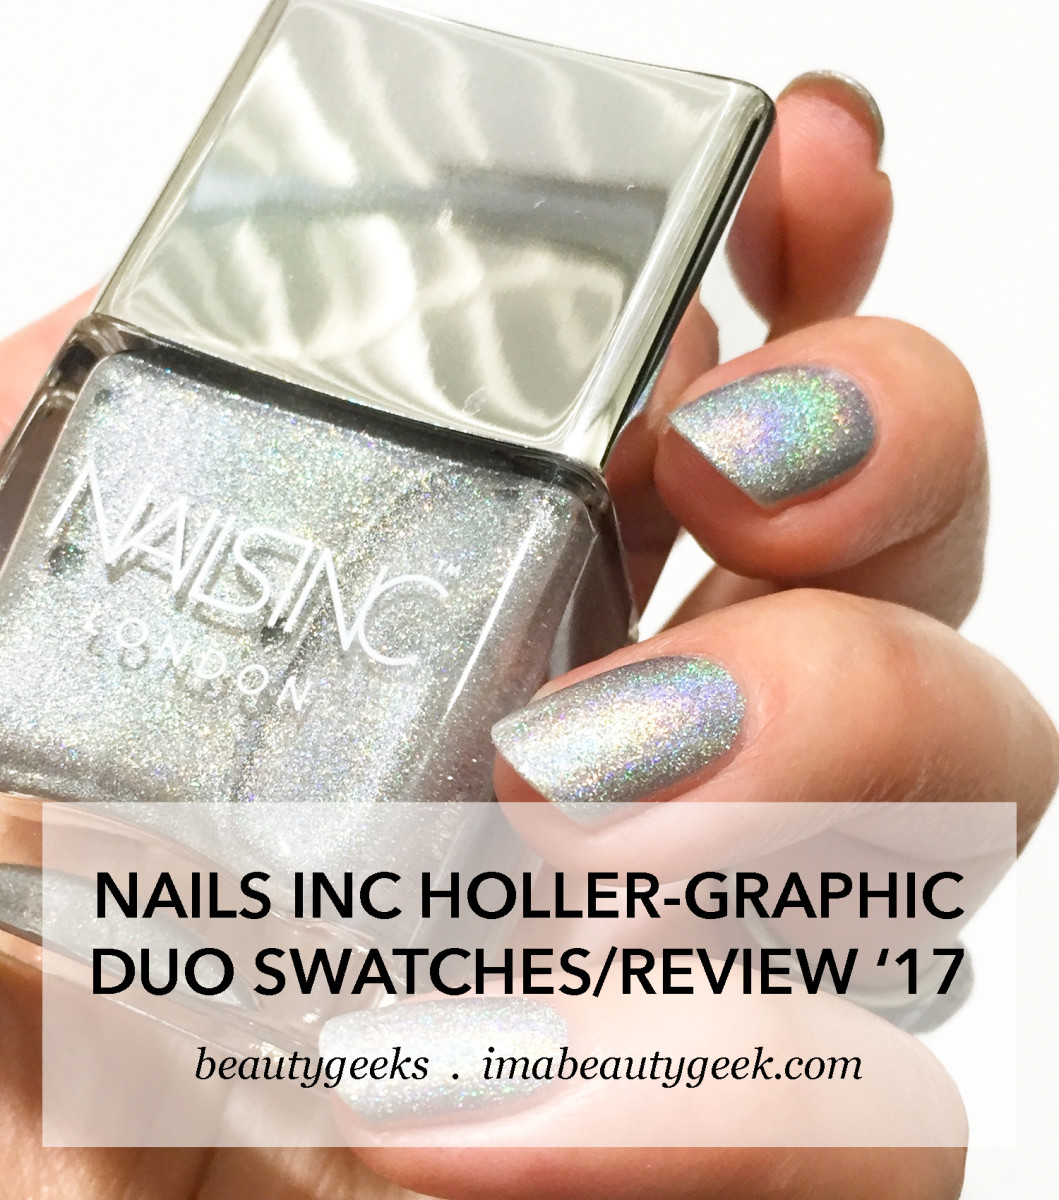 Nails Inc Holler Graphic Duo 2017 Swatches Review _ Rocket Fuel and Ghetto Galactic-BEAUTYGEEKS